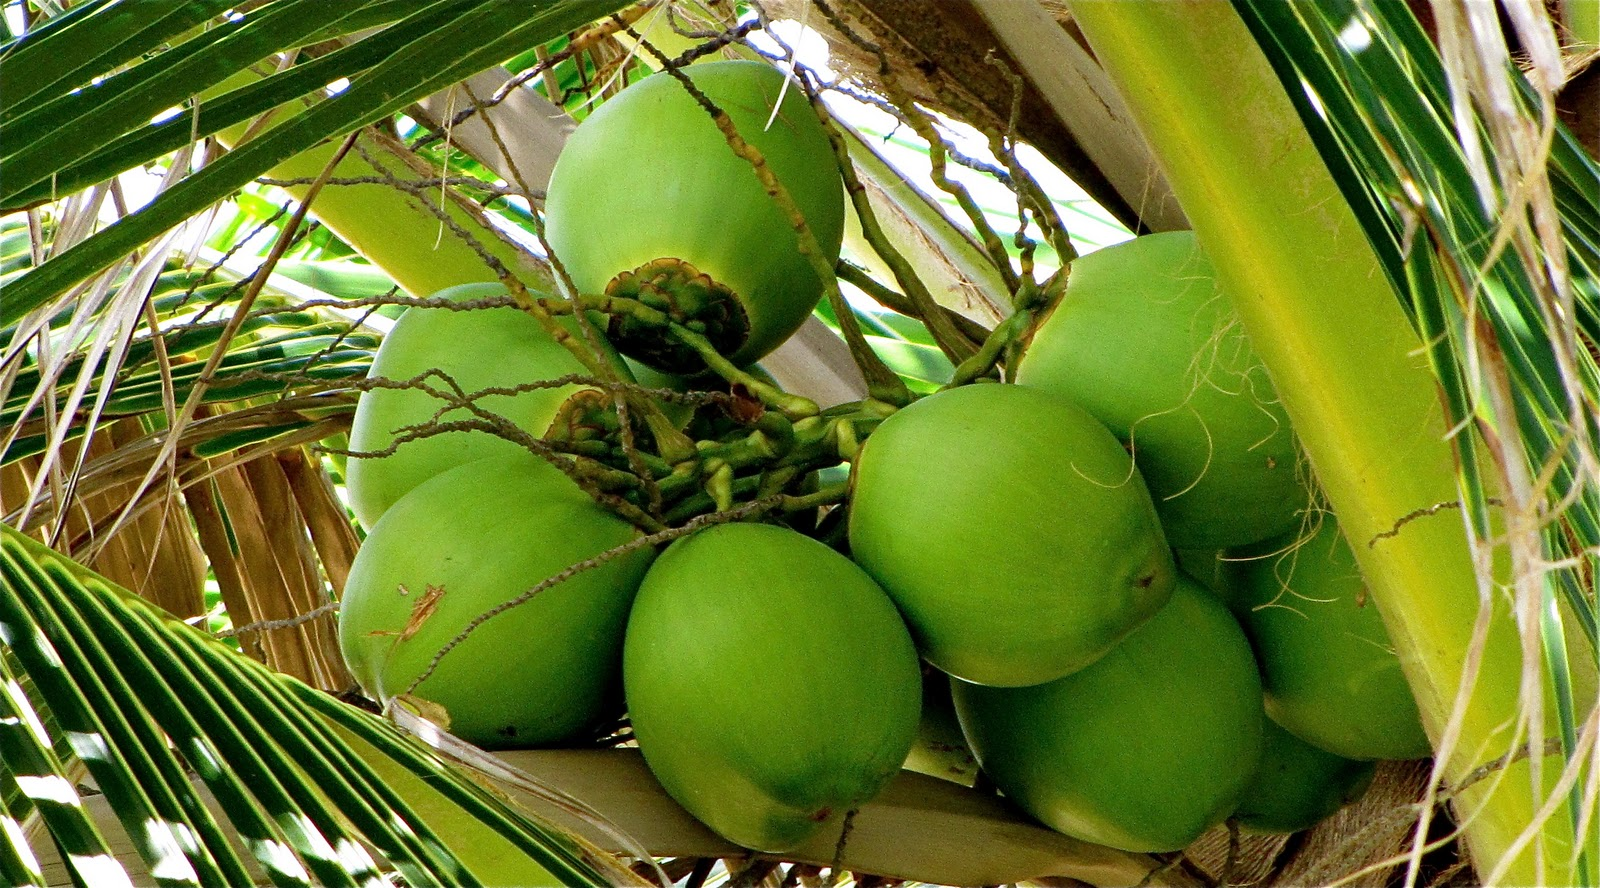 Coconut-The super fruit and its many benefits